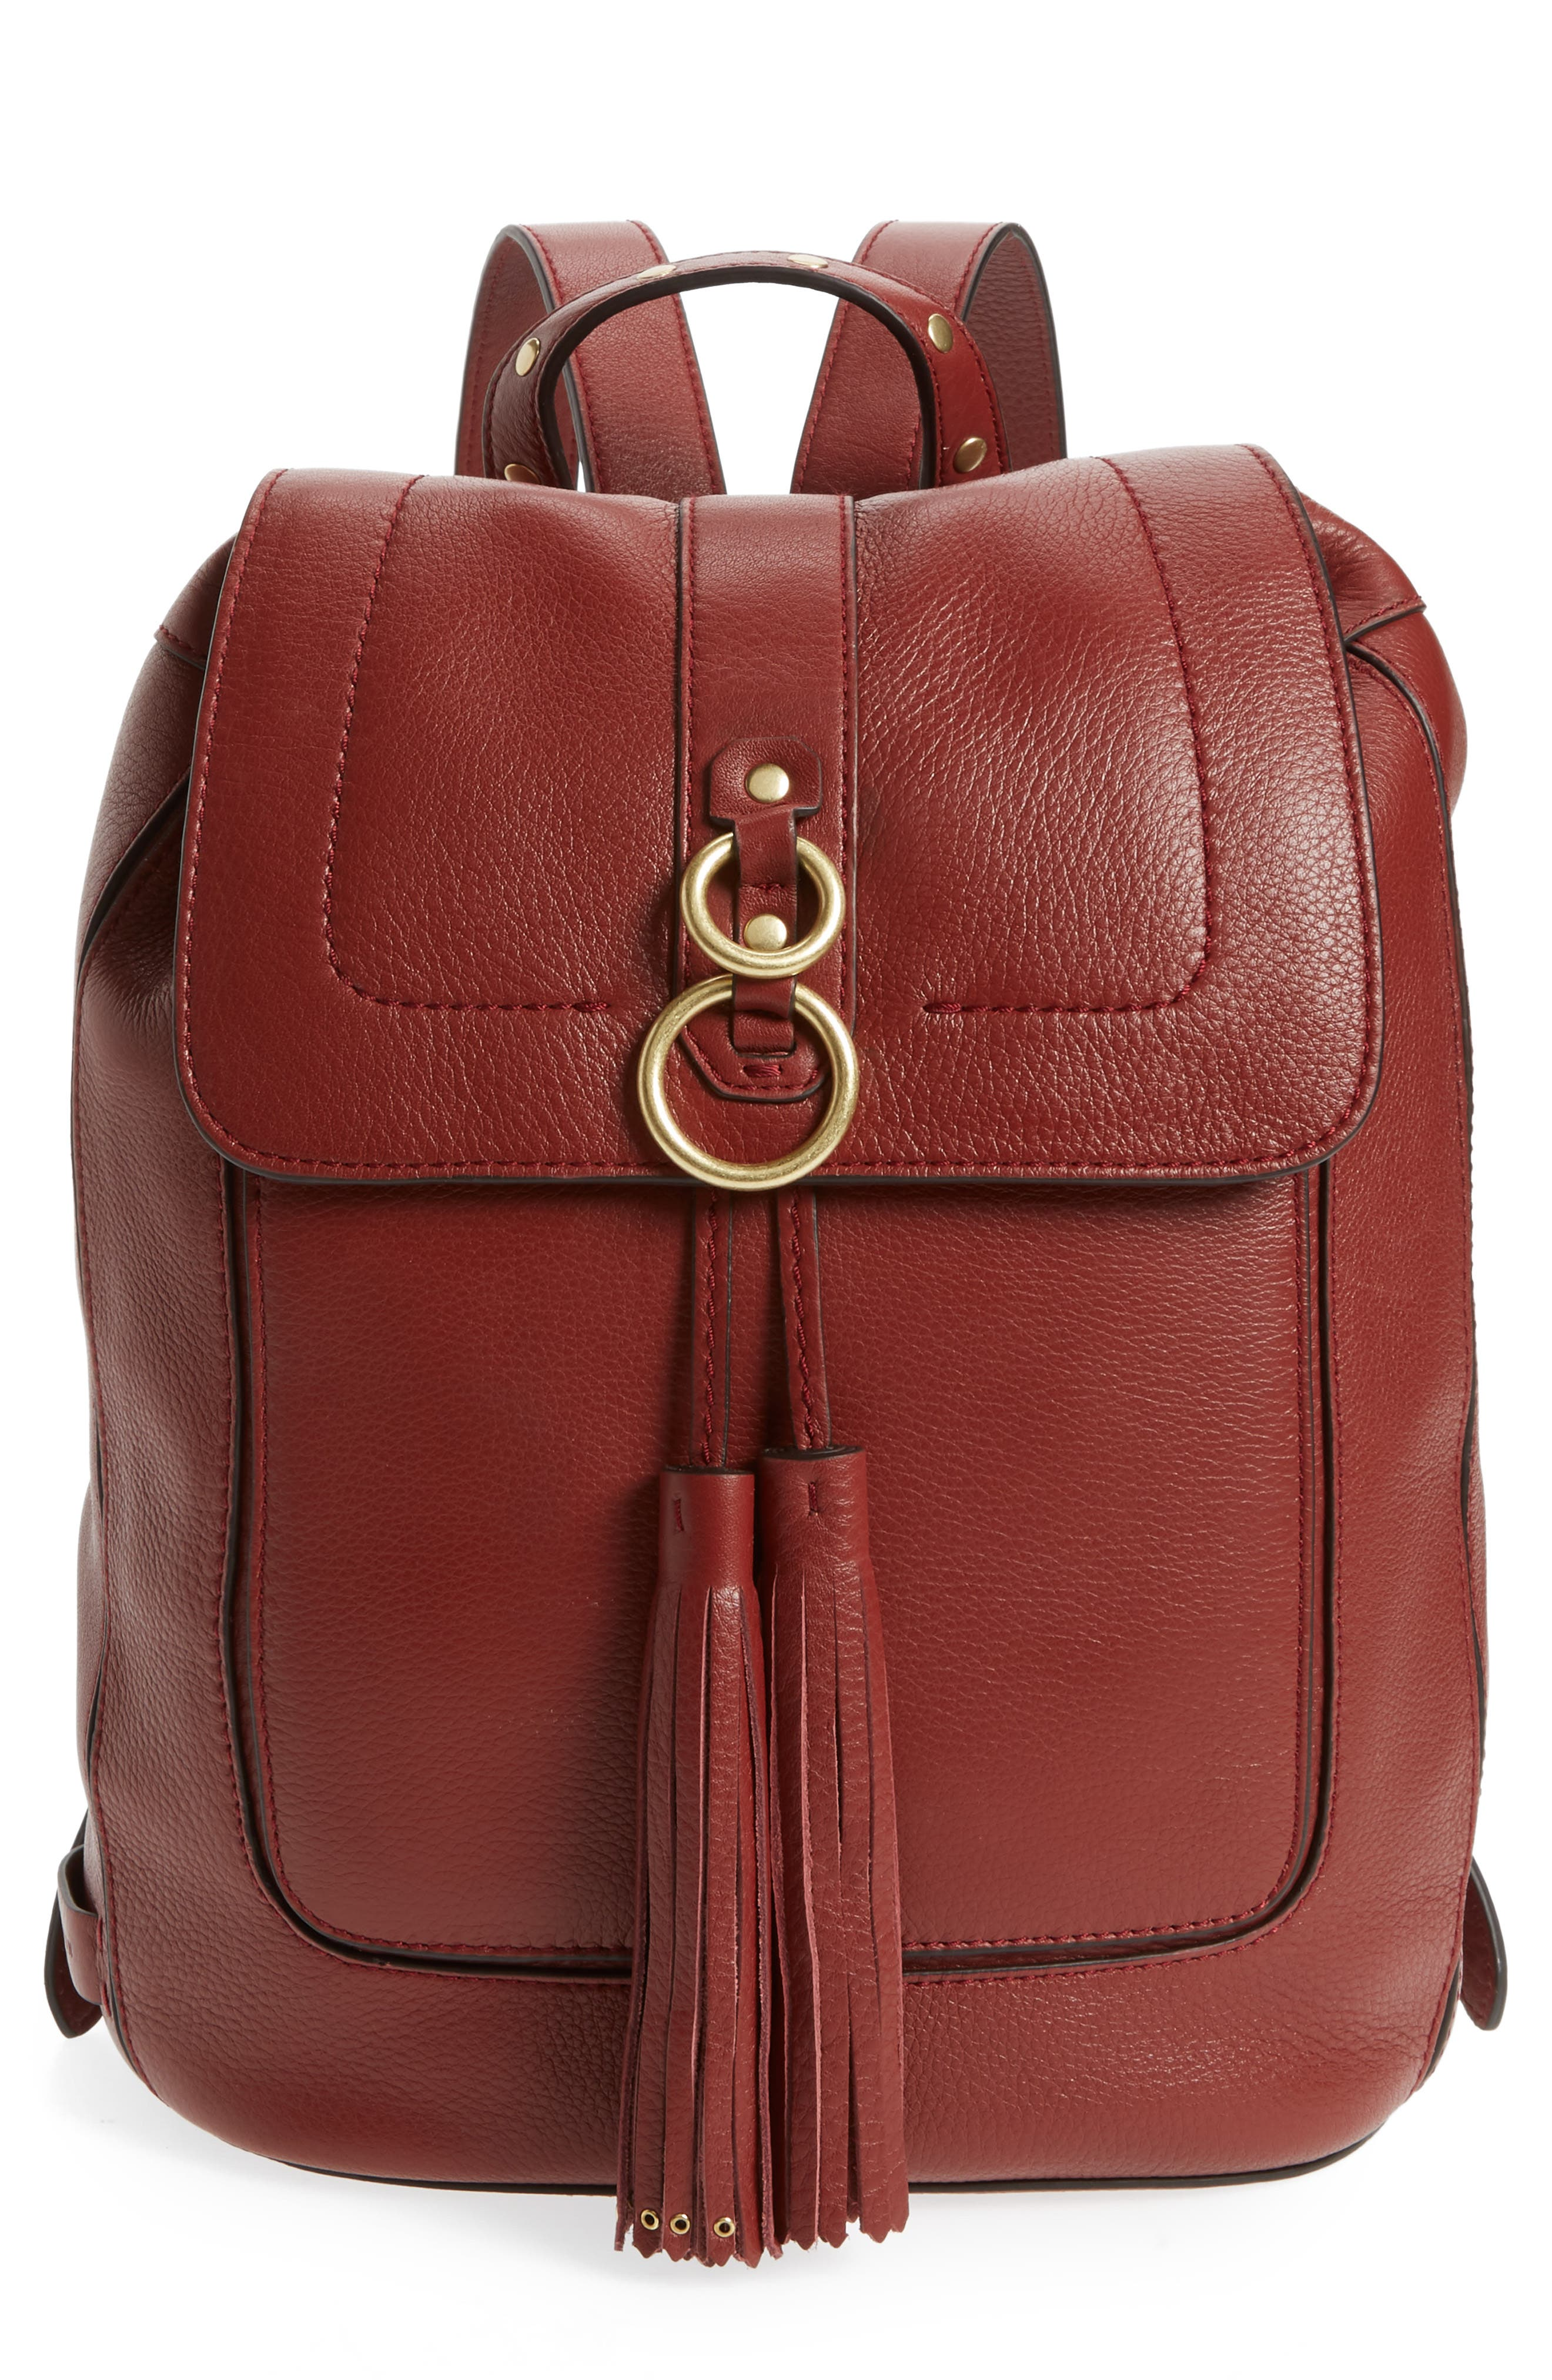 Cassidy RFID Pebbled Leather Backpack,                             Main thumbnail 2, color,